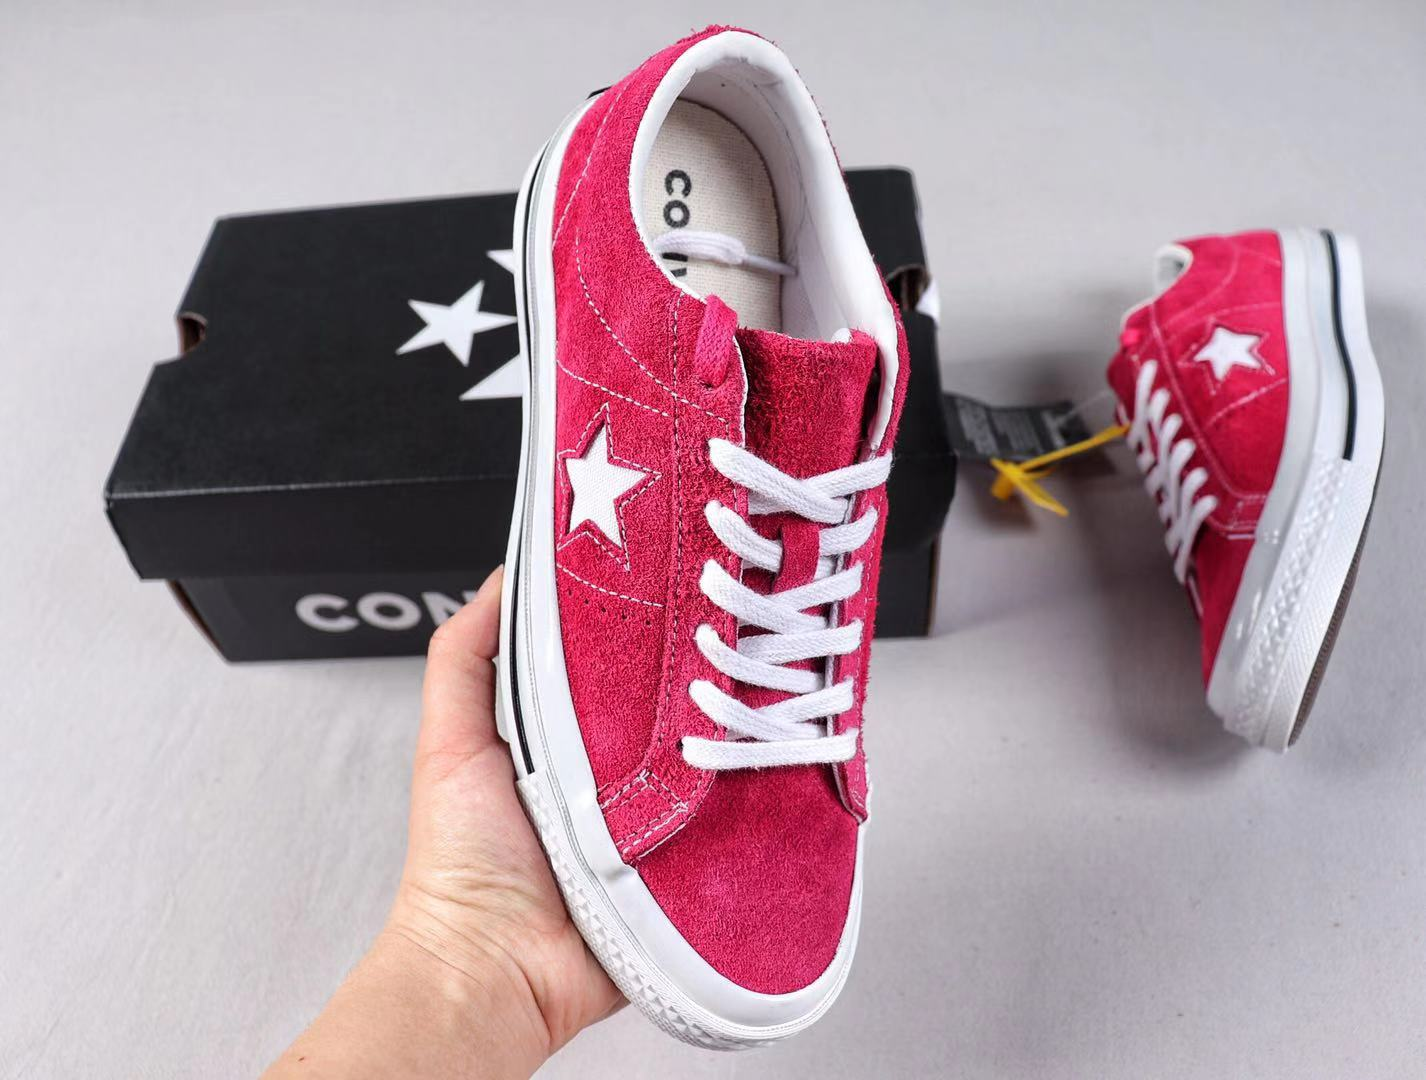 Best Sell Converse One Star Cali Suede Low Red/White Top Sneakers